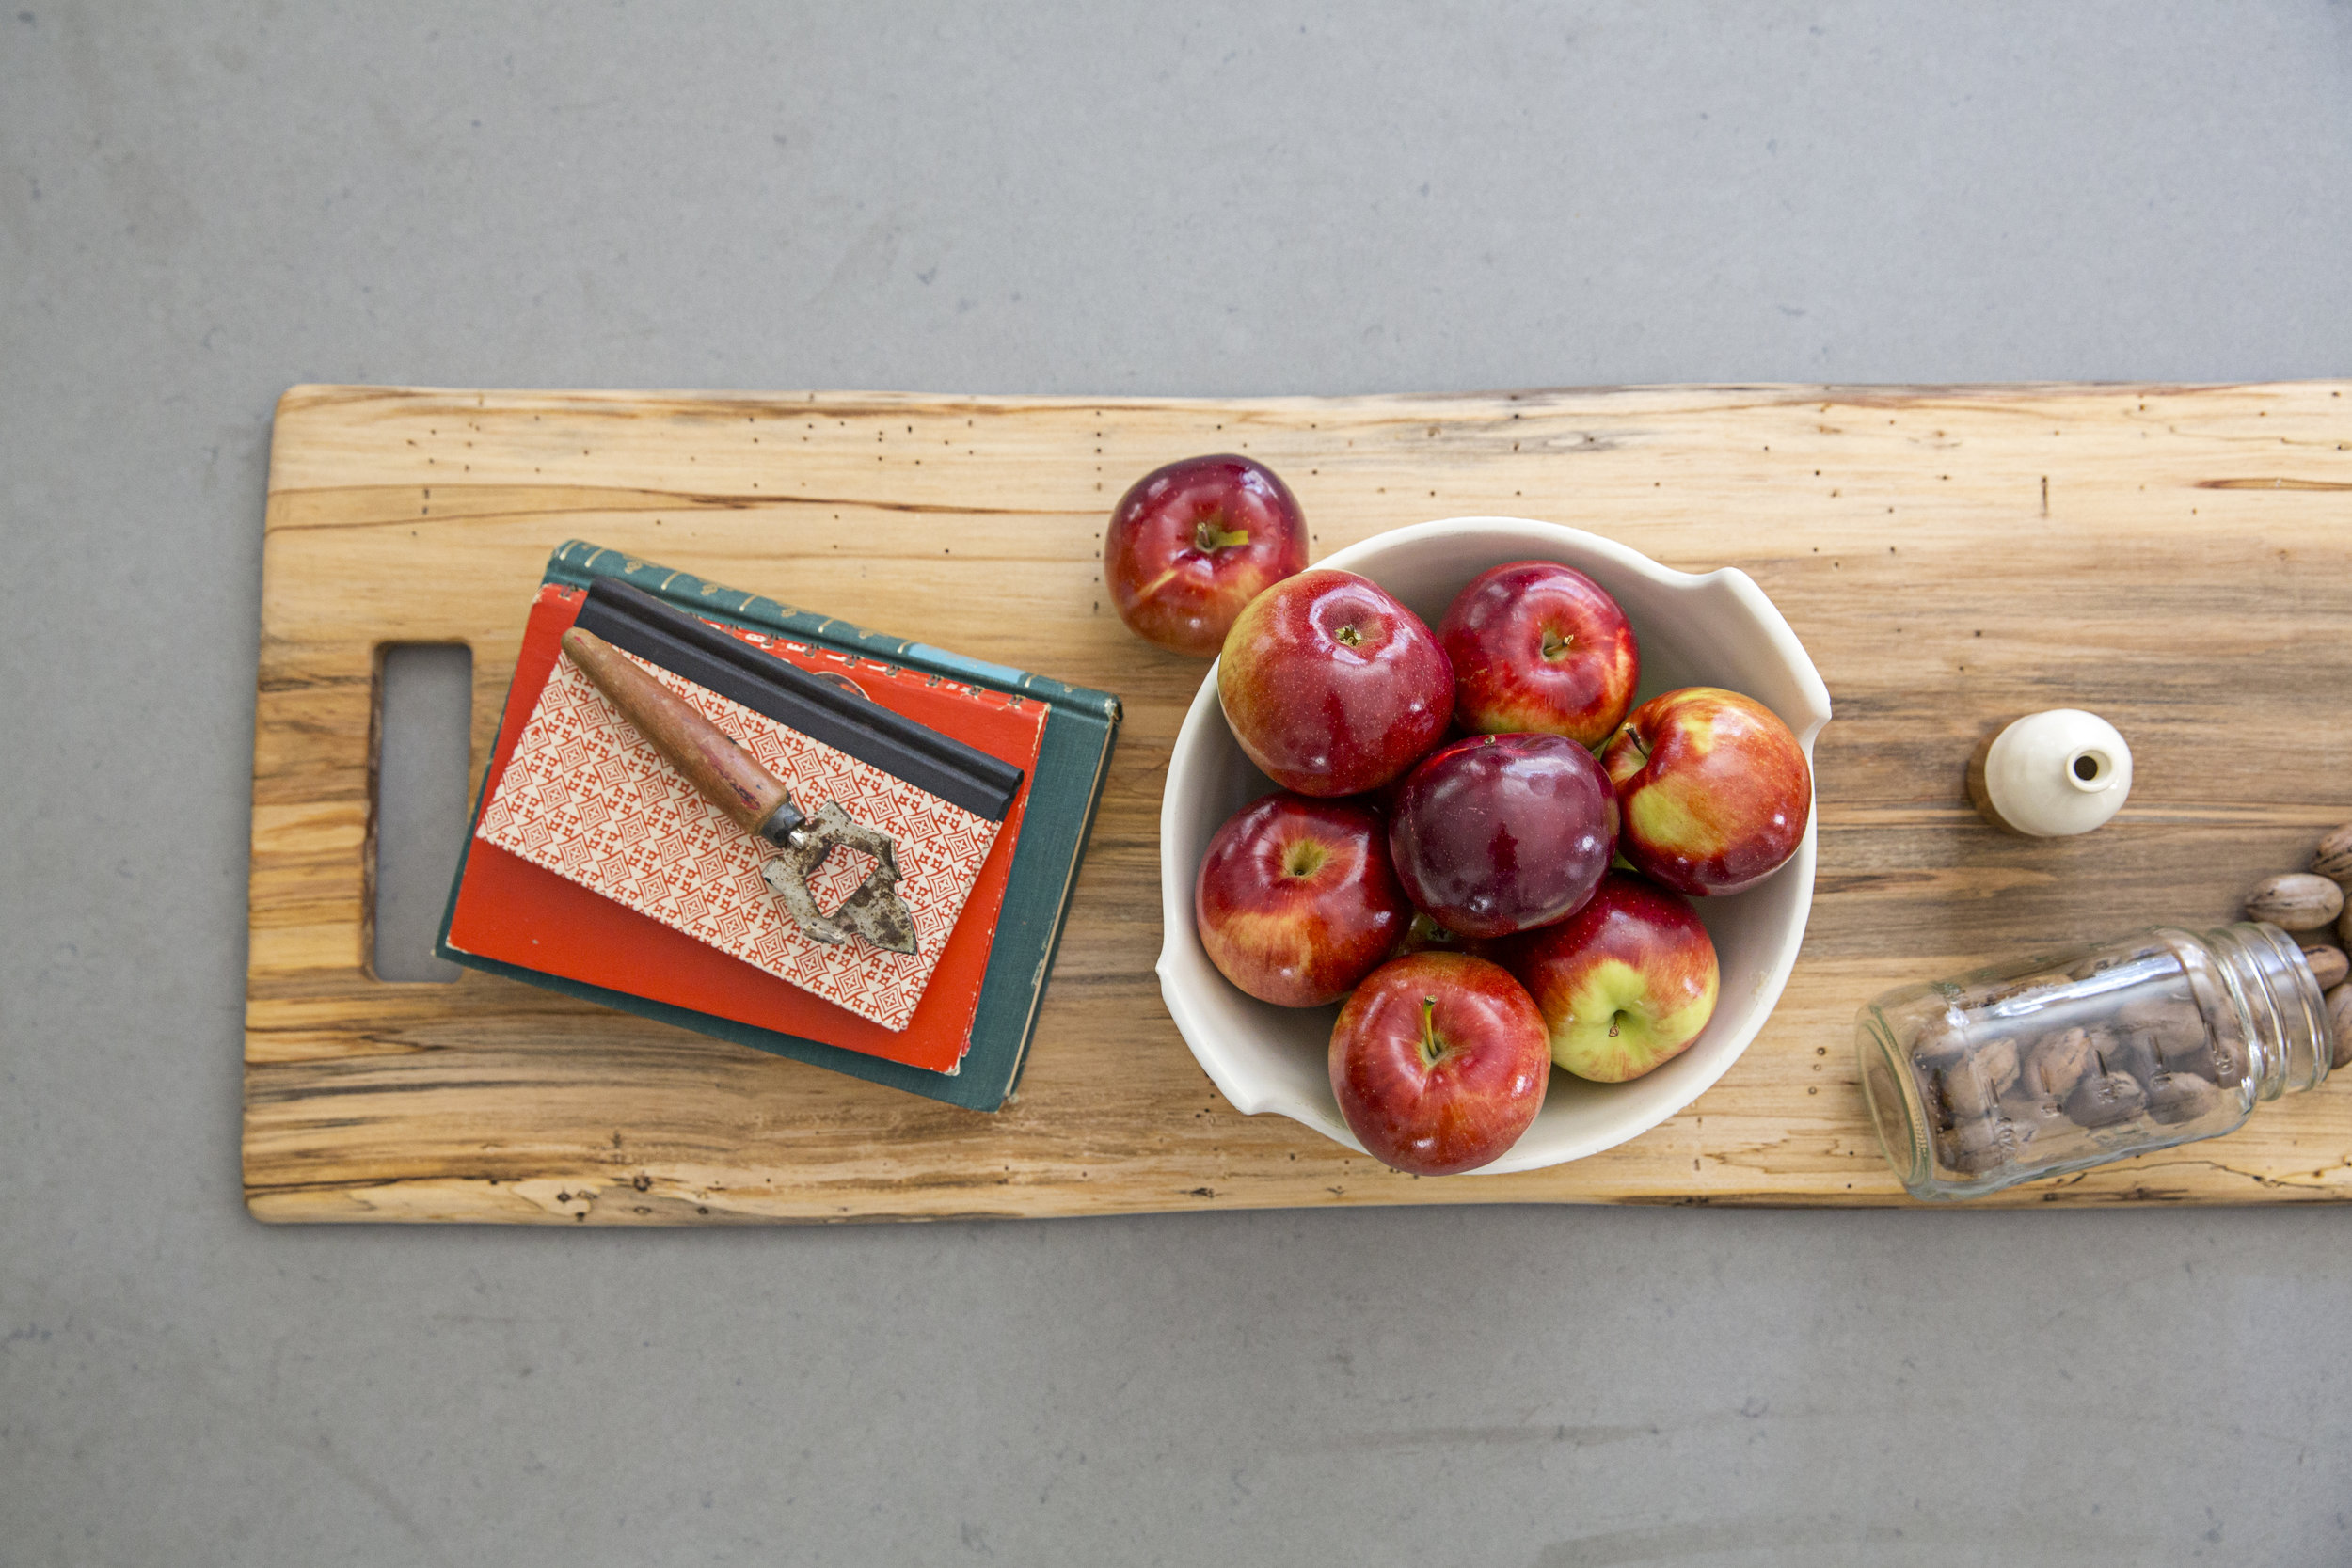 Wooden Fall Table Display / Plantation Board / WoodKith